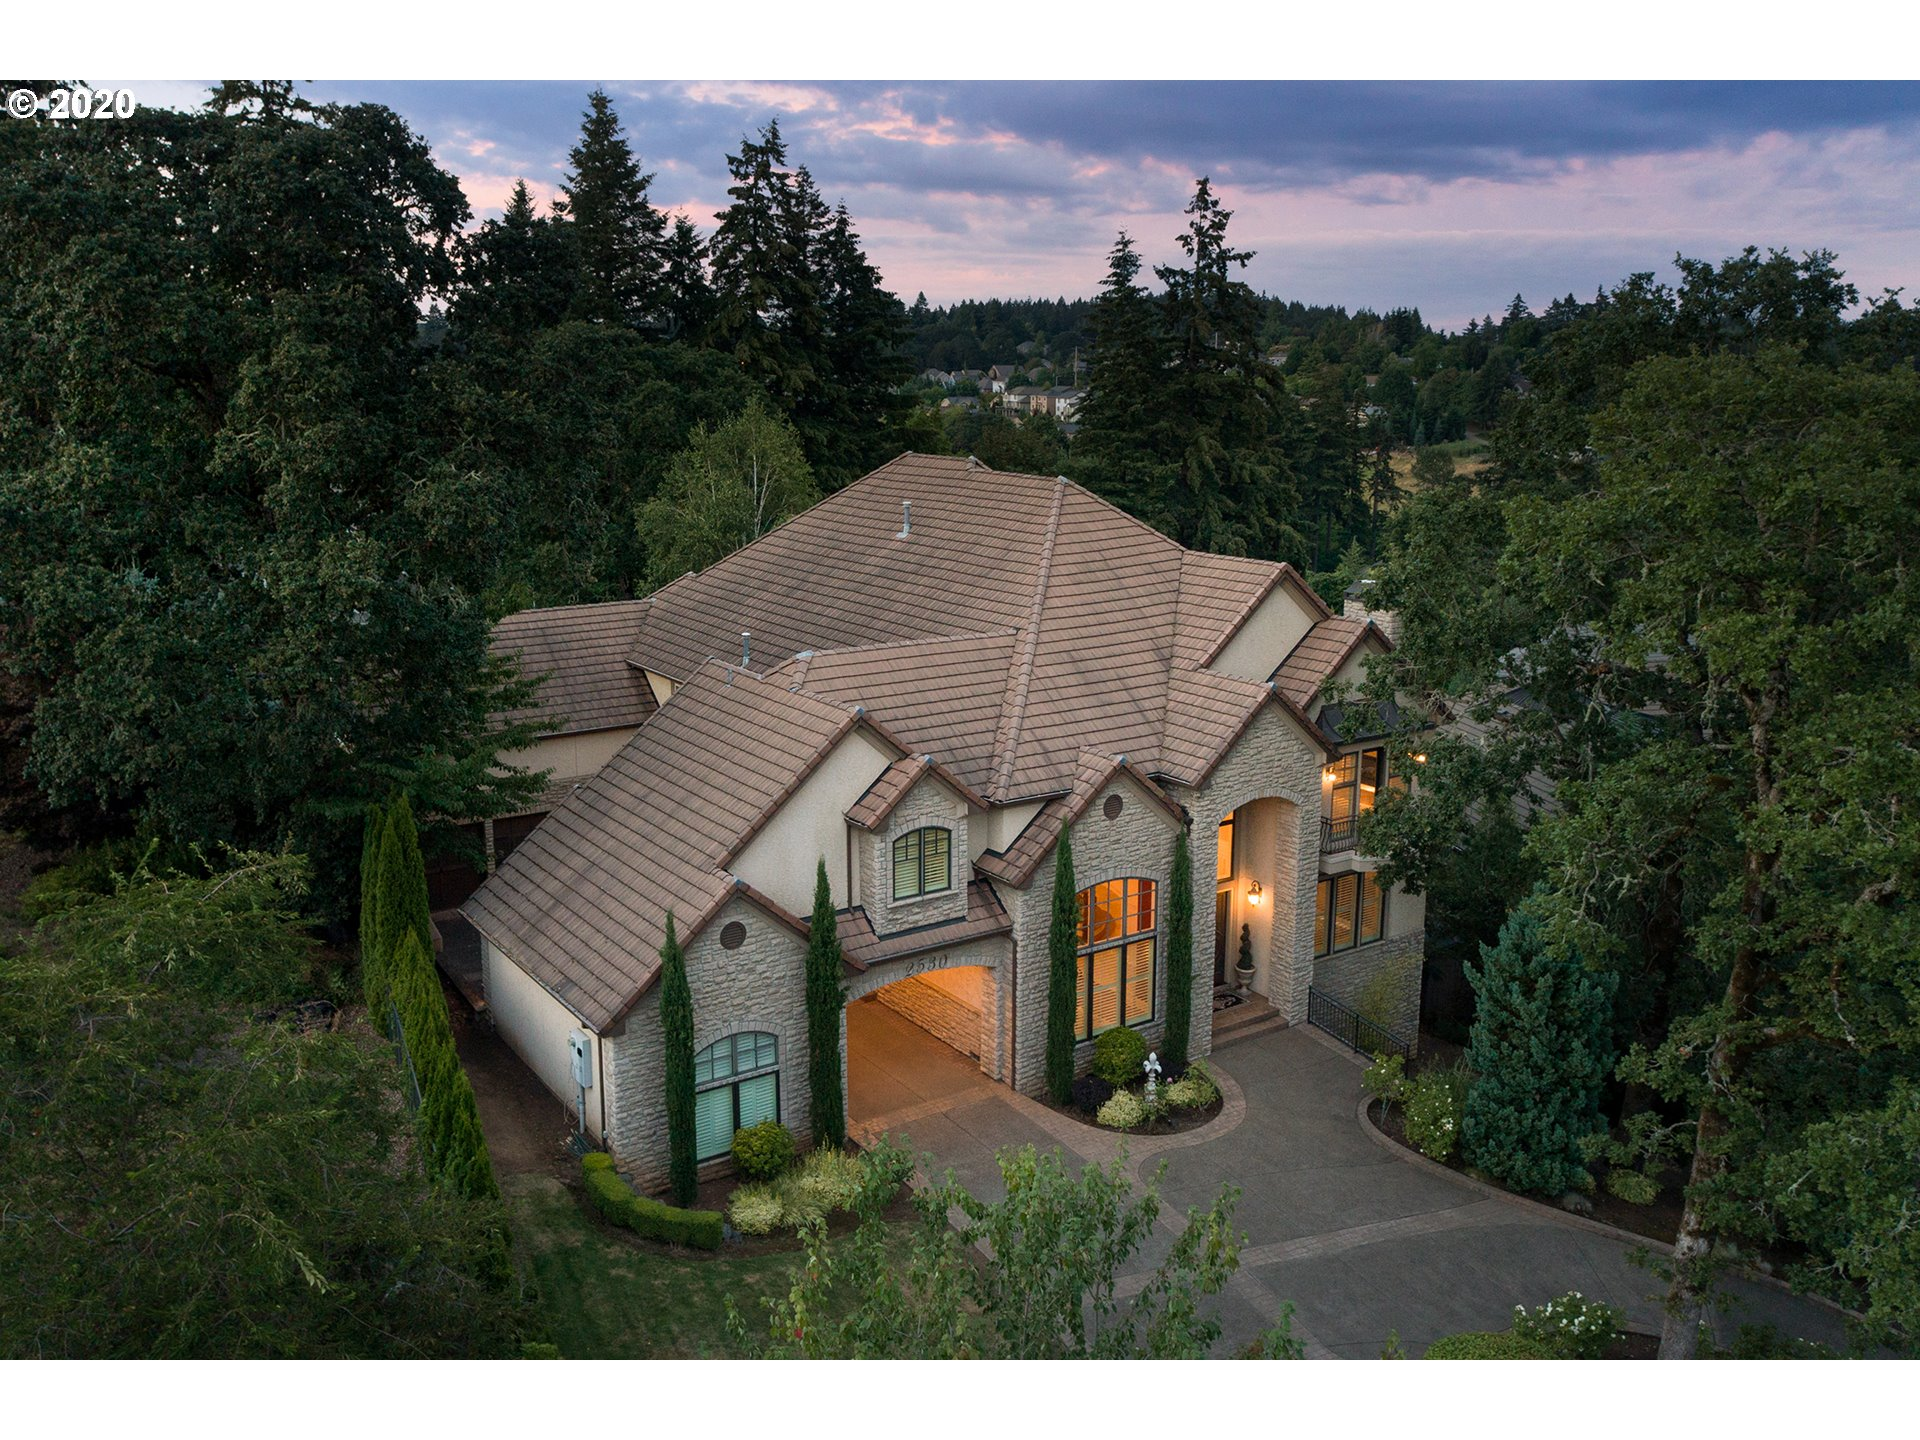 Majestic French Mediterranean estate in the exclusive gated community of Le Chevalier, West Linn. House is in impeccable condition with porte-cochere, circular driveway & multiple garages. Grand staircase, vaulted ceilings & exceptional custom millwork in this 6 bedroom masterpiece. Separate entrance apartment w/  kitchenette, amazing home theater, incredible stone wine cellar, home gym, gourmet kitchen w/ subzero, Viking oven. Covered expansive patio for indoor/outdoor living w/ Mt. Hood view.